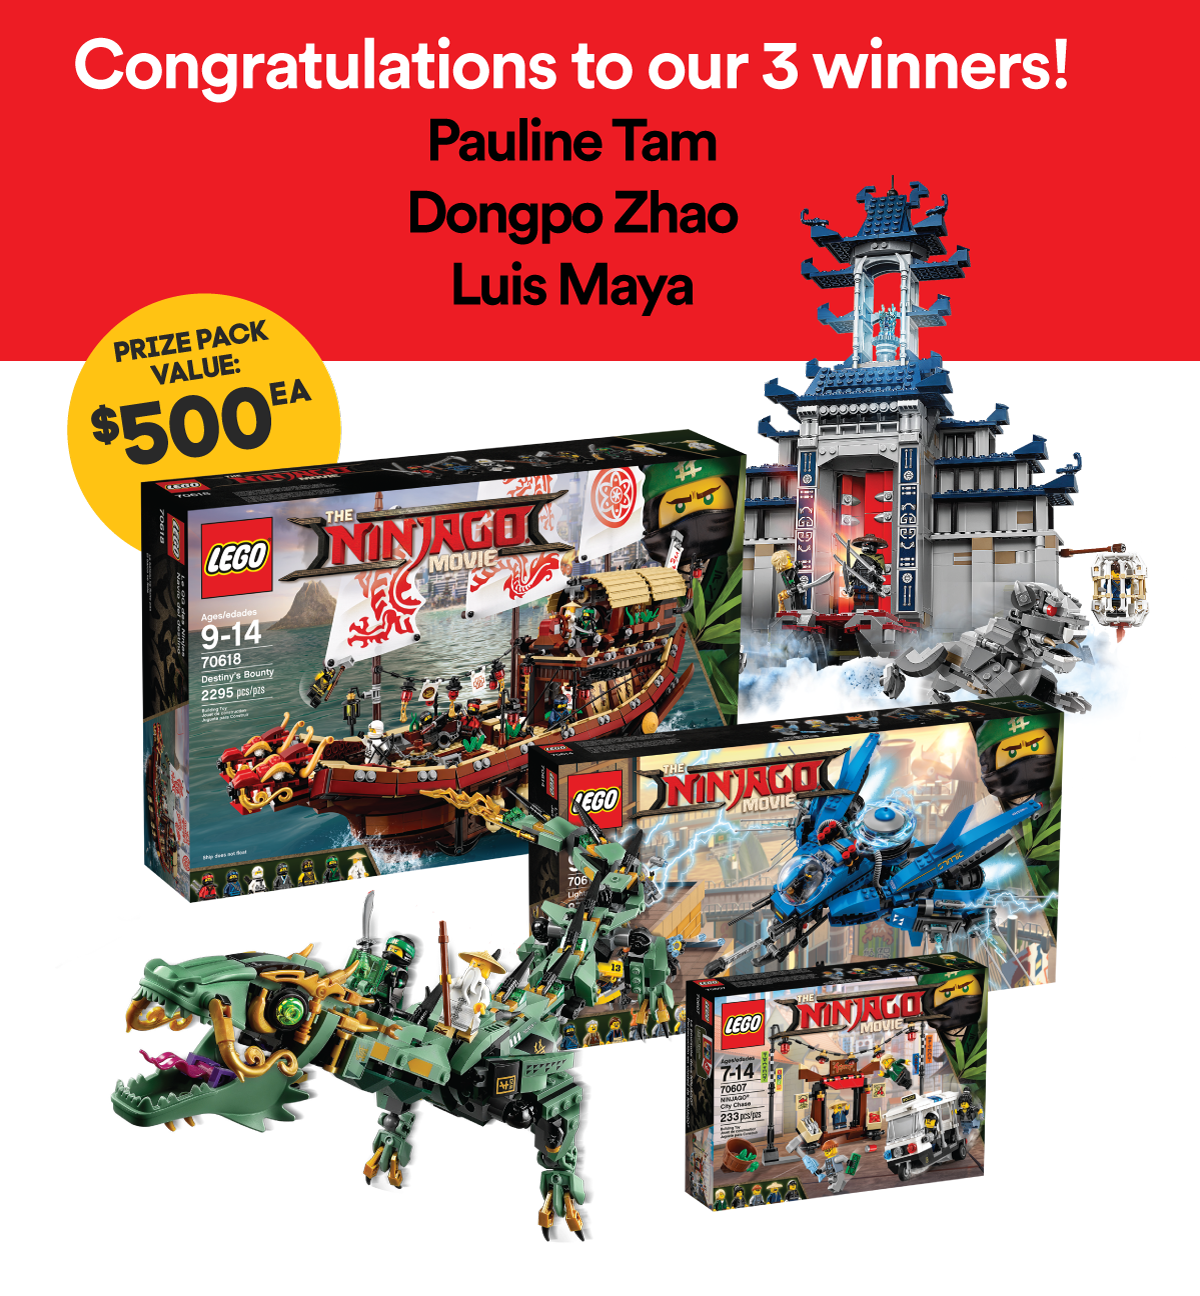 Enter to win 1 of 3 LEGO Ninjago prize packs.